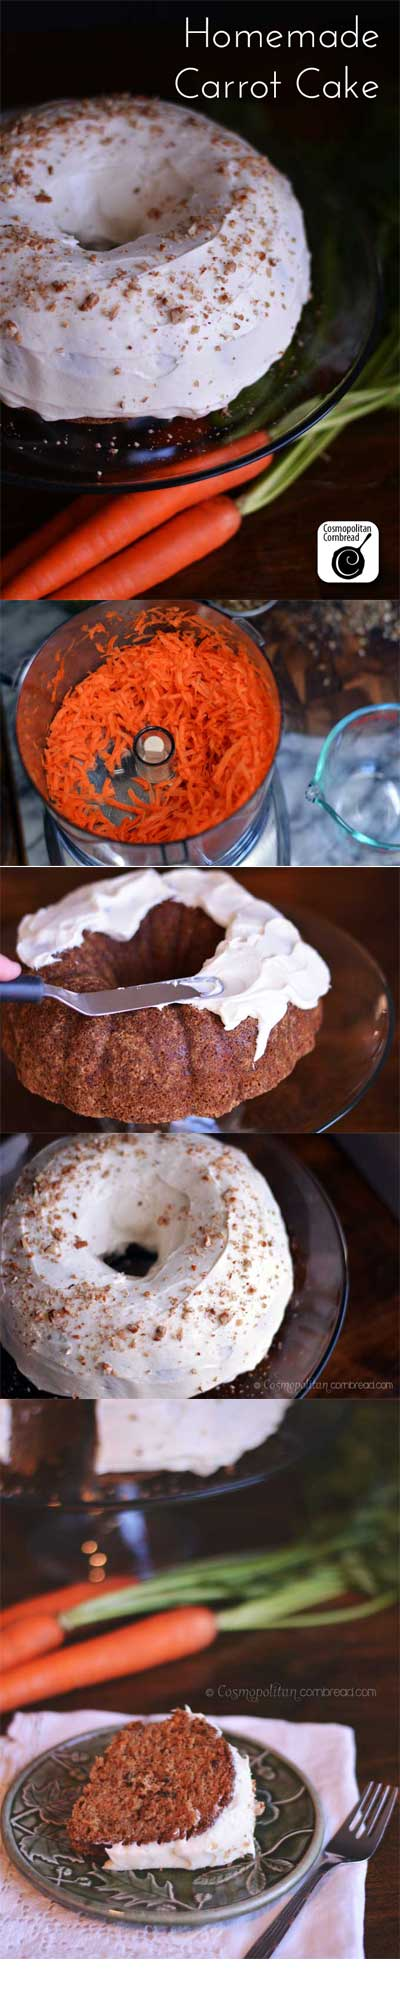 How to make classic Homemade Carrot Cake with Cream Cheese Frosting - from Cosmopolitan Cornbread